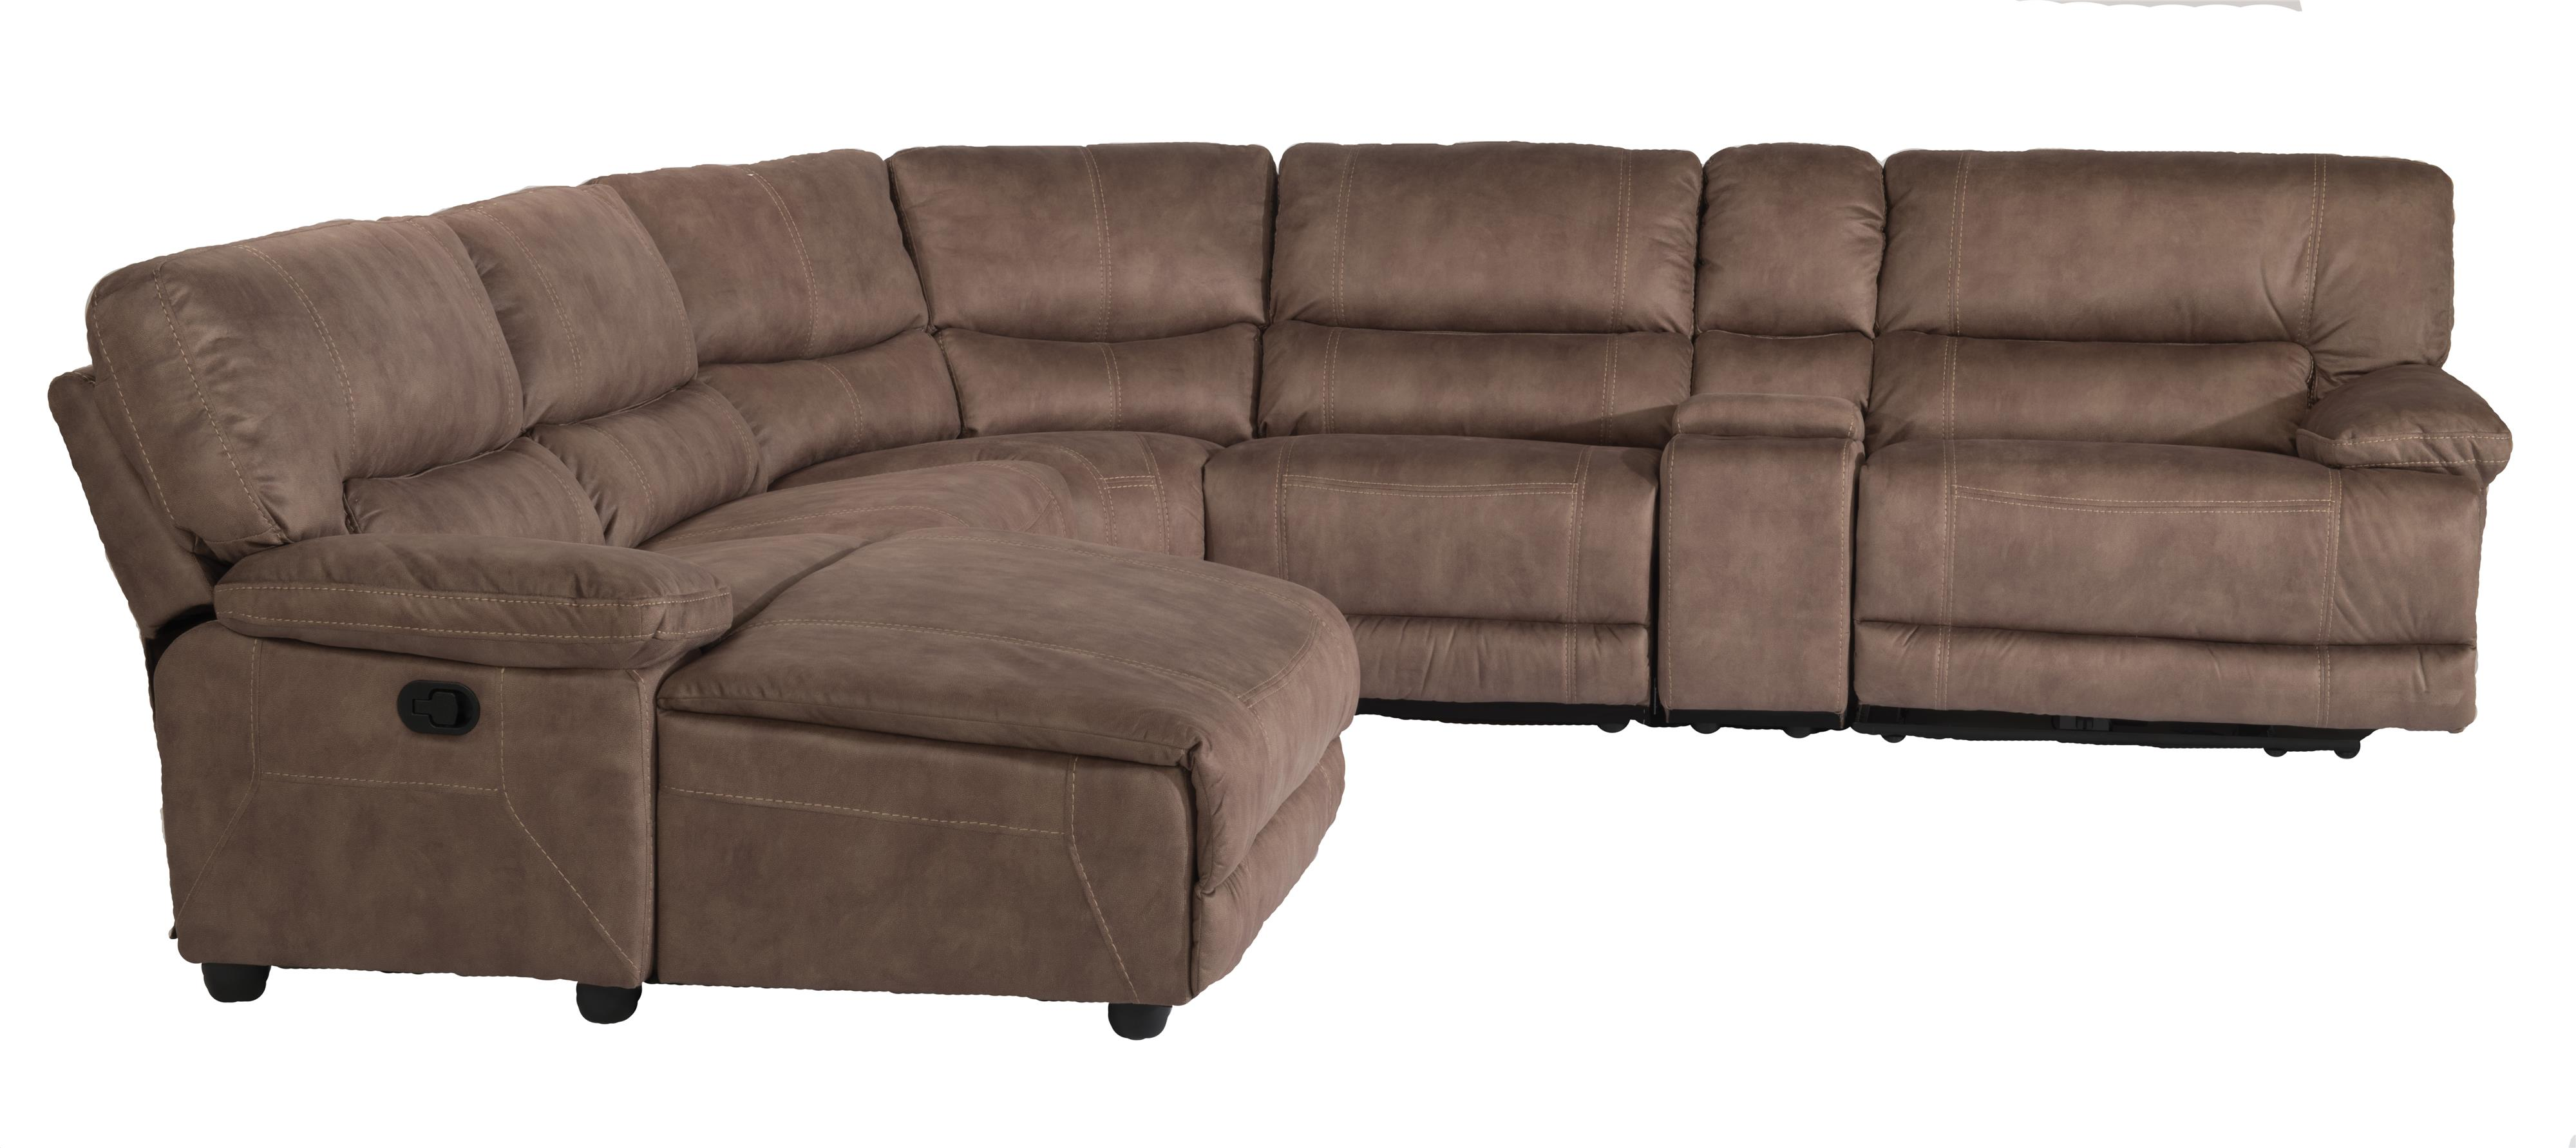 Latitudes - Delia 6 Pc Reclining Sectional Sofa w/ LAF Chaise